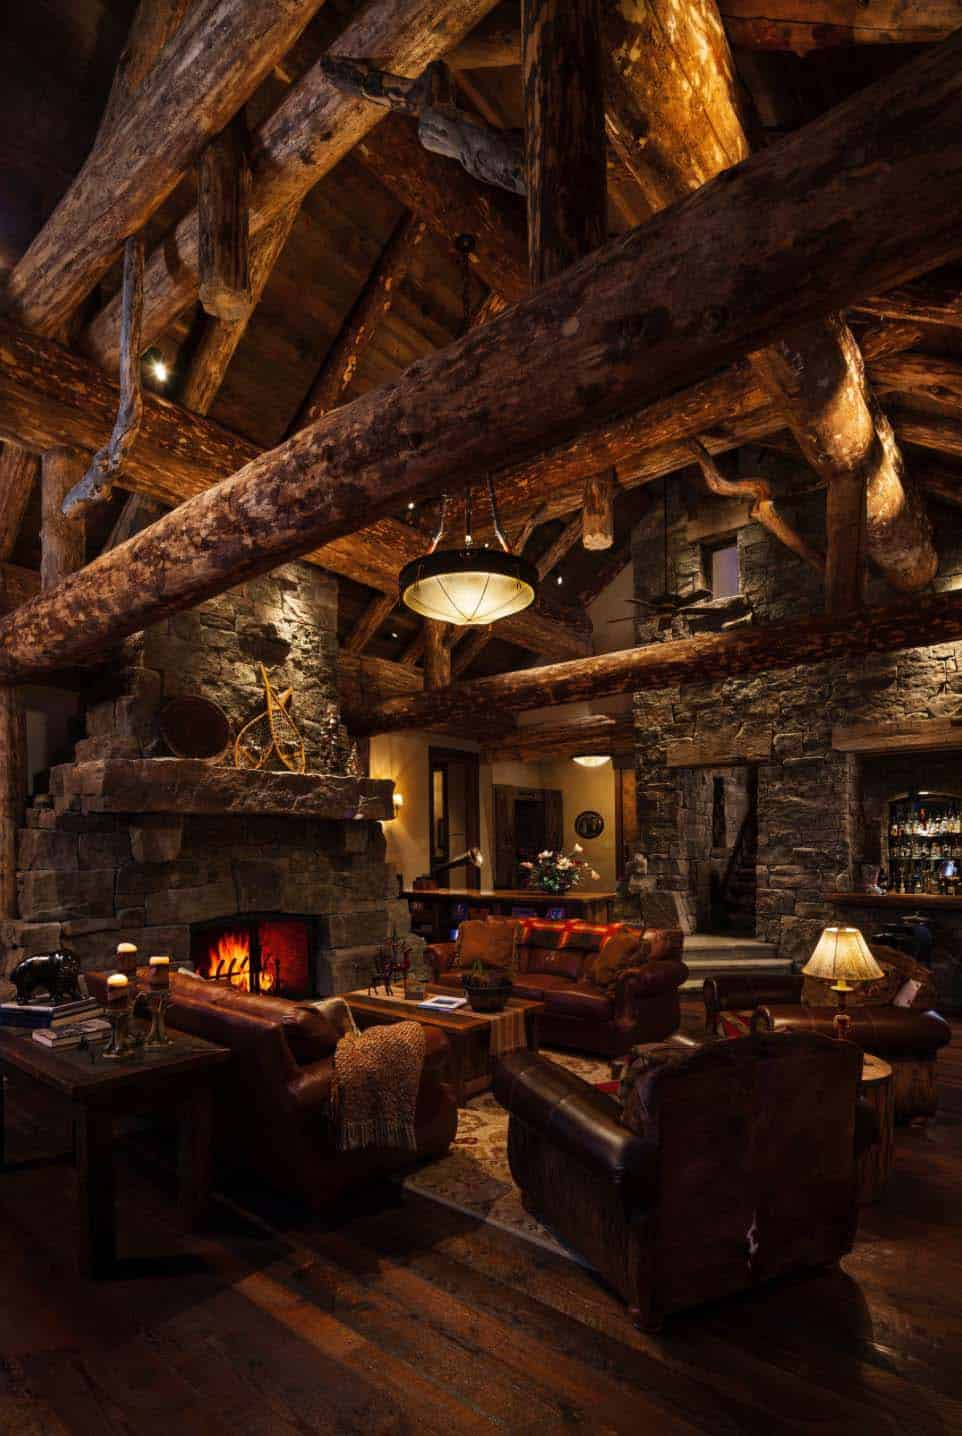 Rustic Log Home Design-Faure Halvorsen Architects-04-1 Kindesign